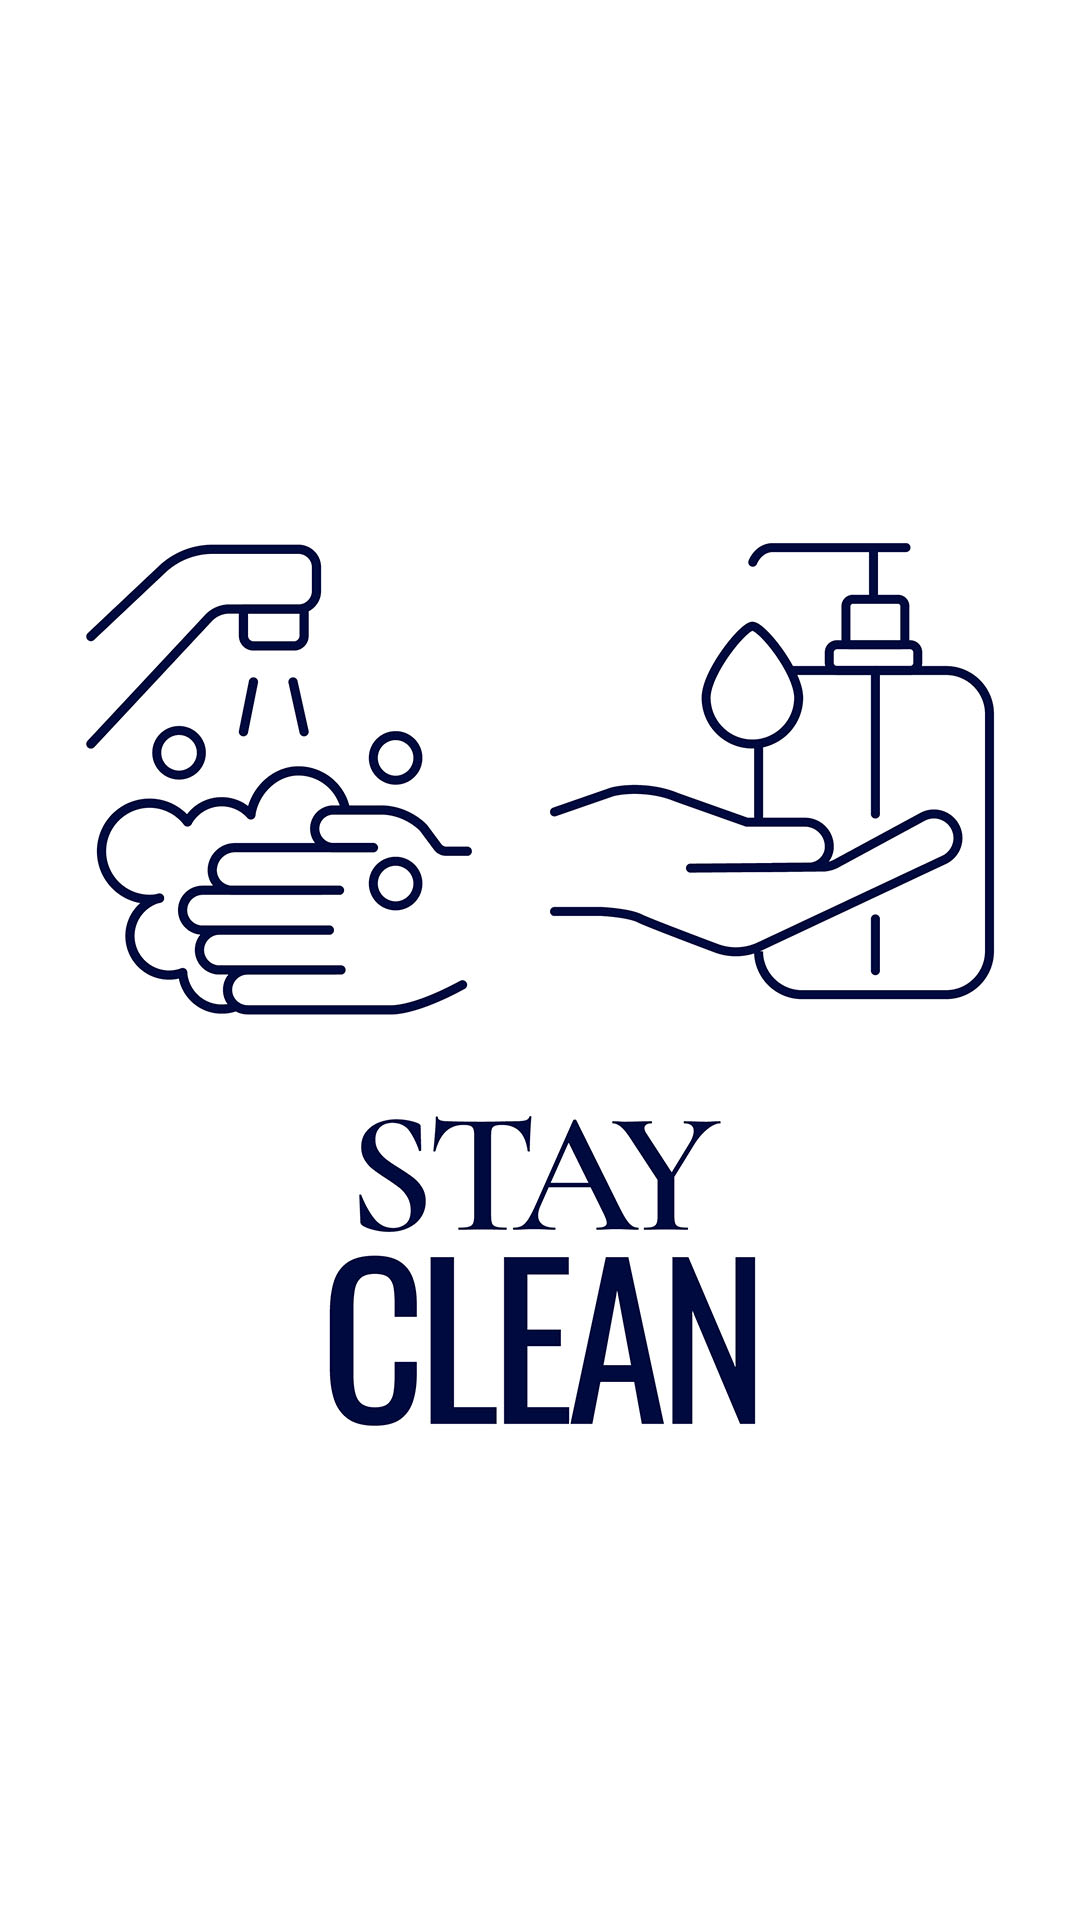 Stay clean (wash your hands)